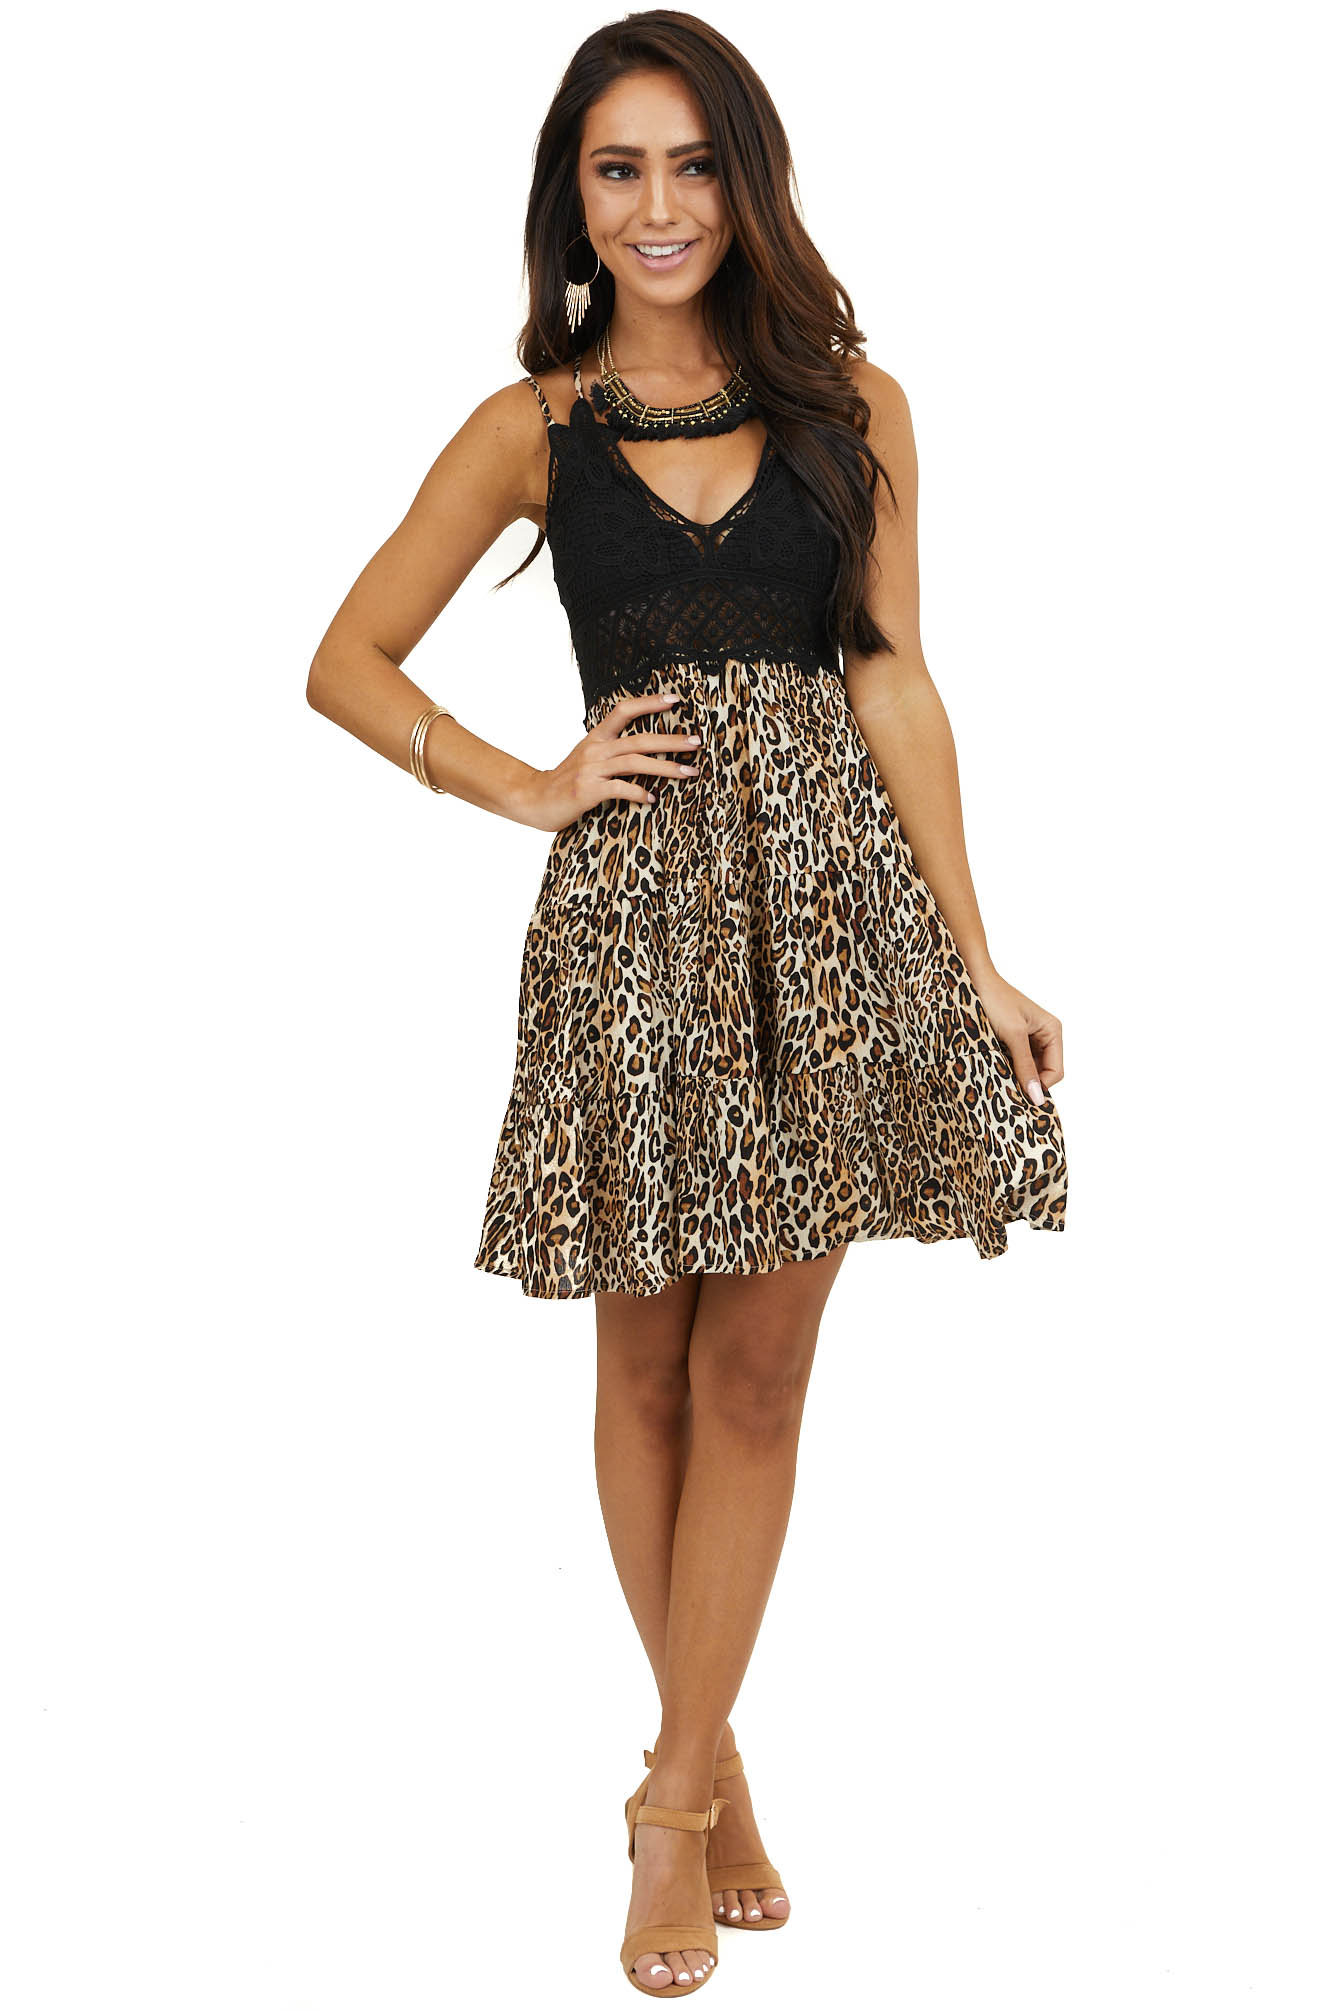 Beige and Black Leopard Print Dress with Crochet Lace Bust